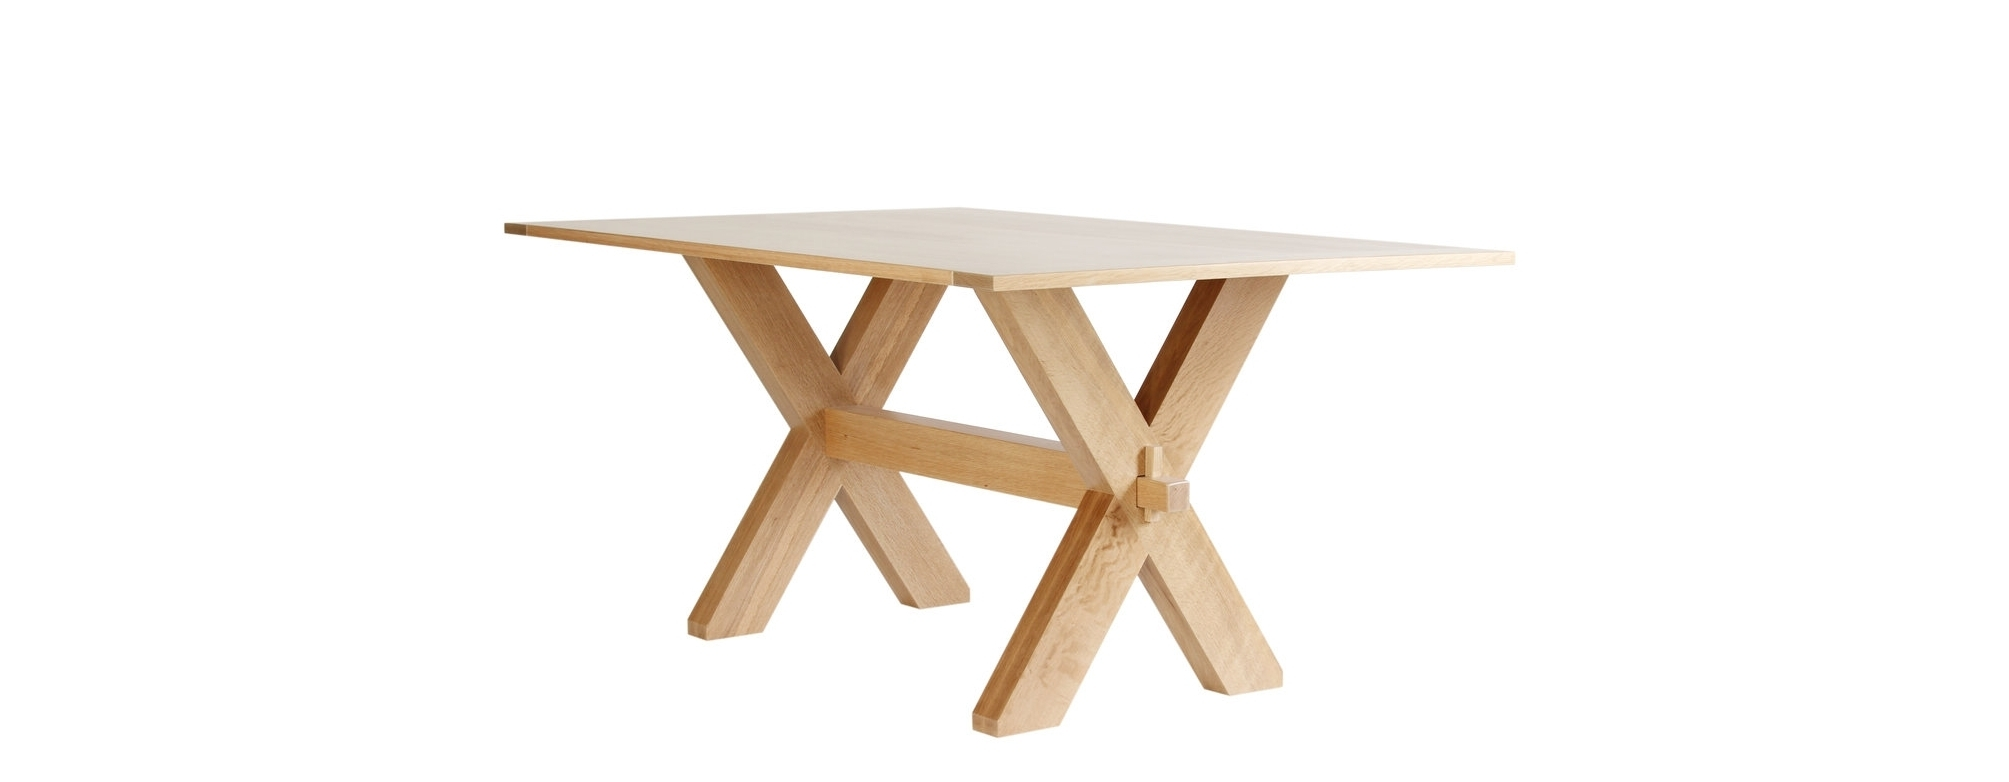 BUCK DINING TABLE OAK.jpg